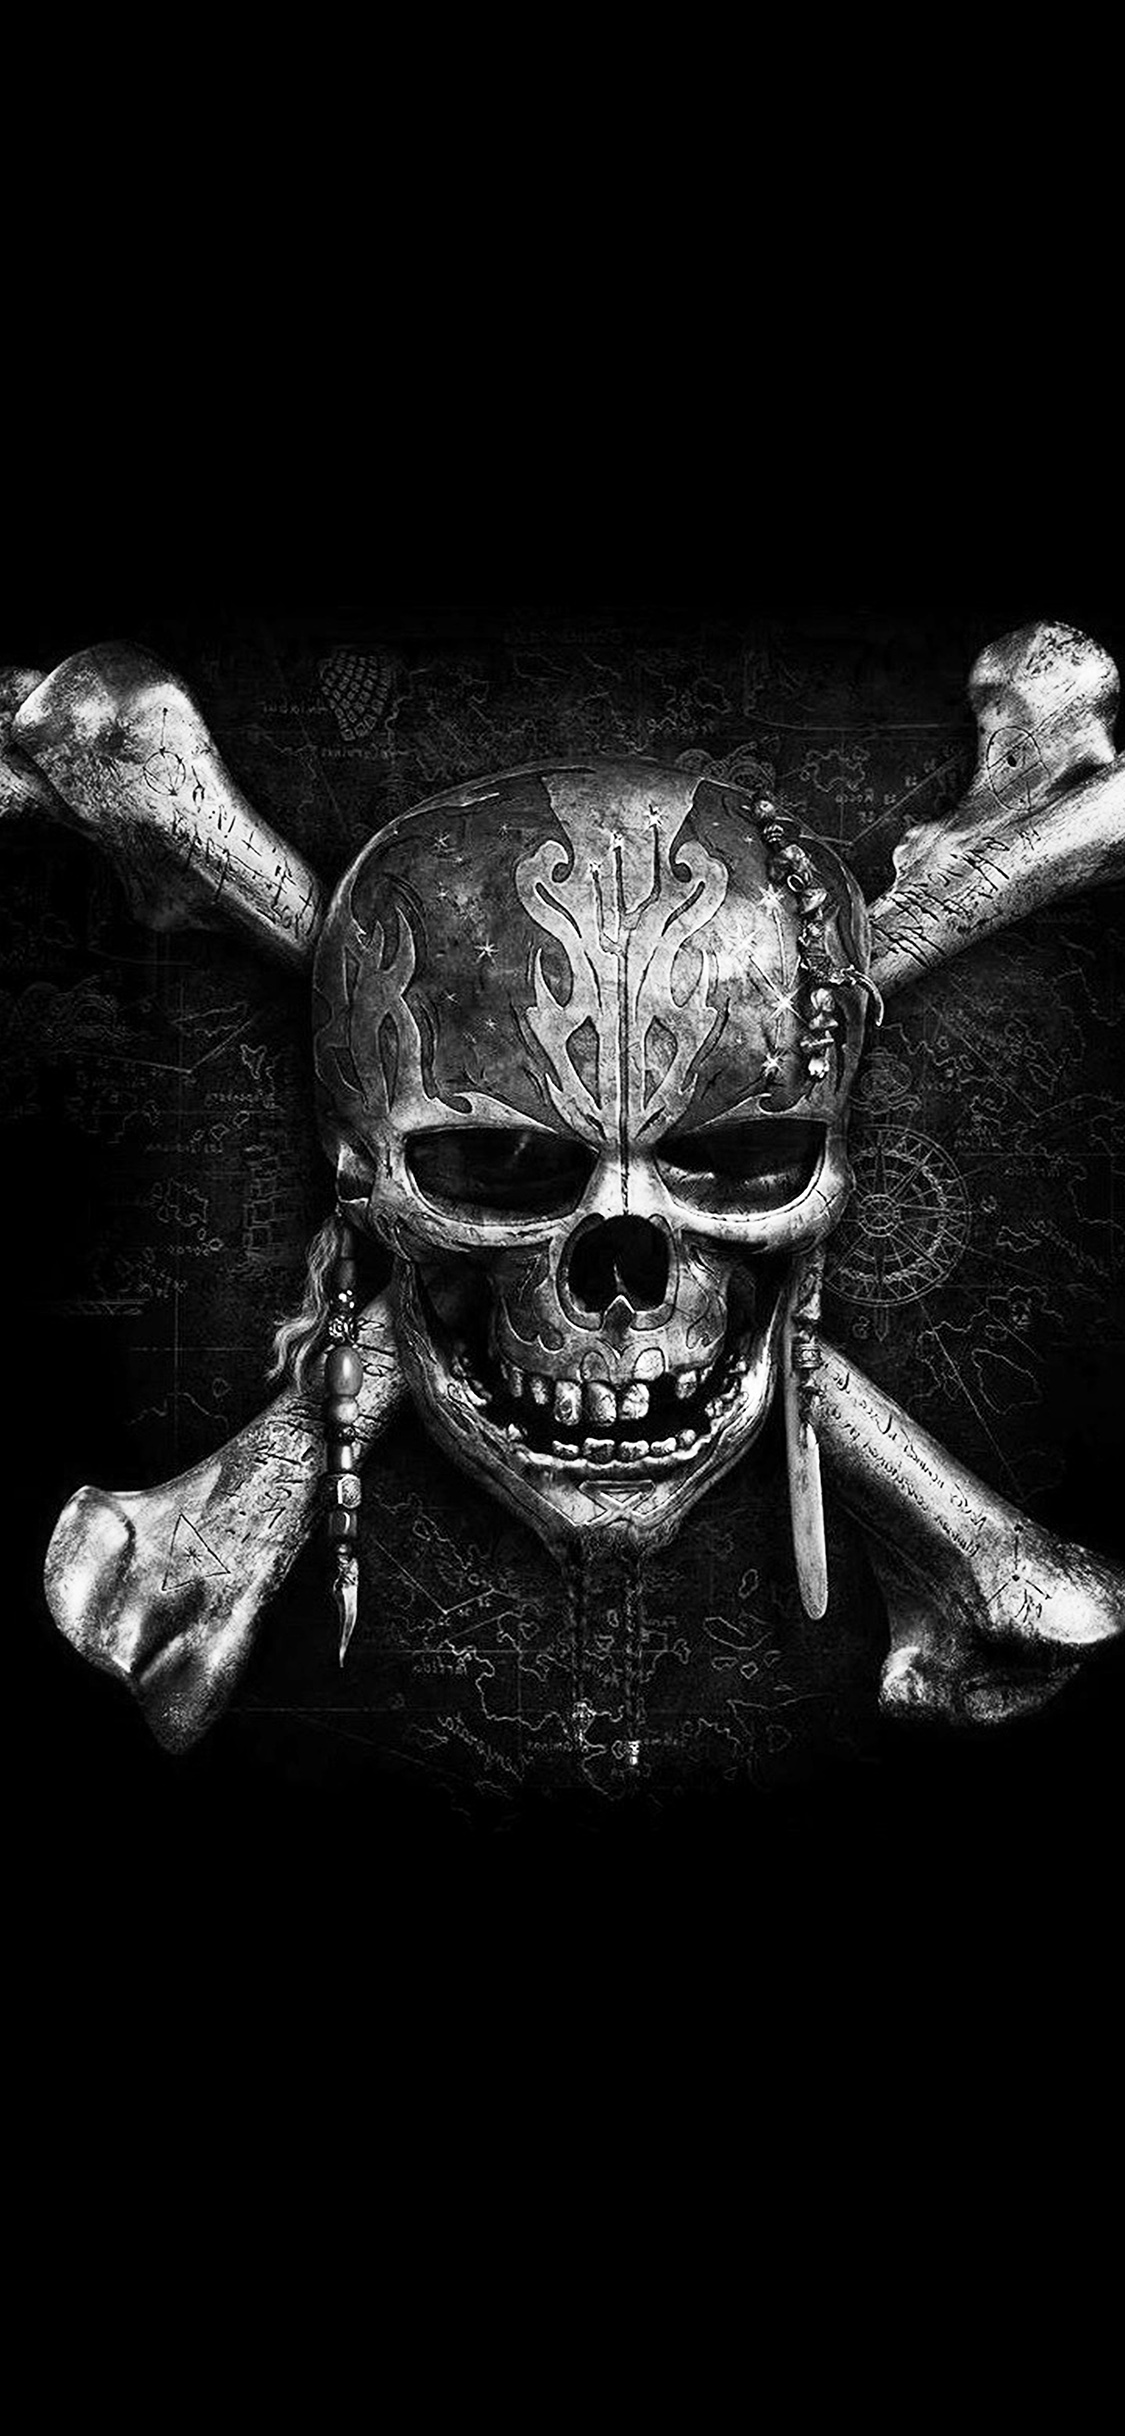 iphonepapers | iphone 8 wallpaper | at84-pirates-dark-skull-art